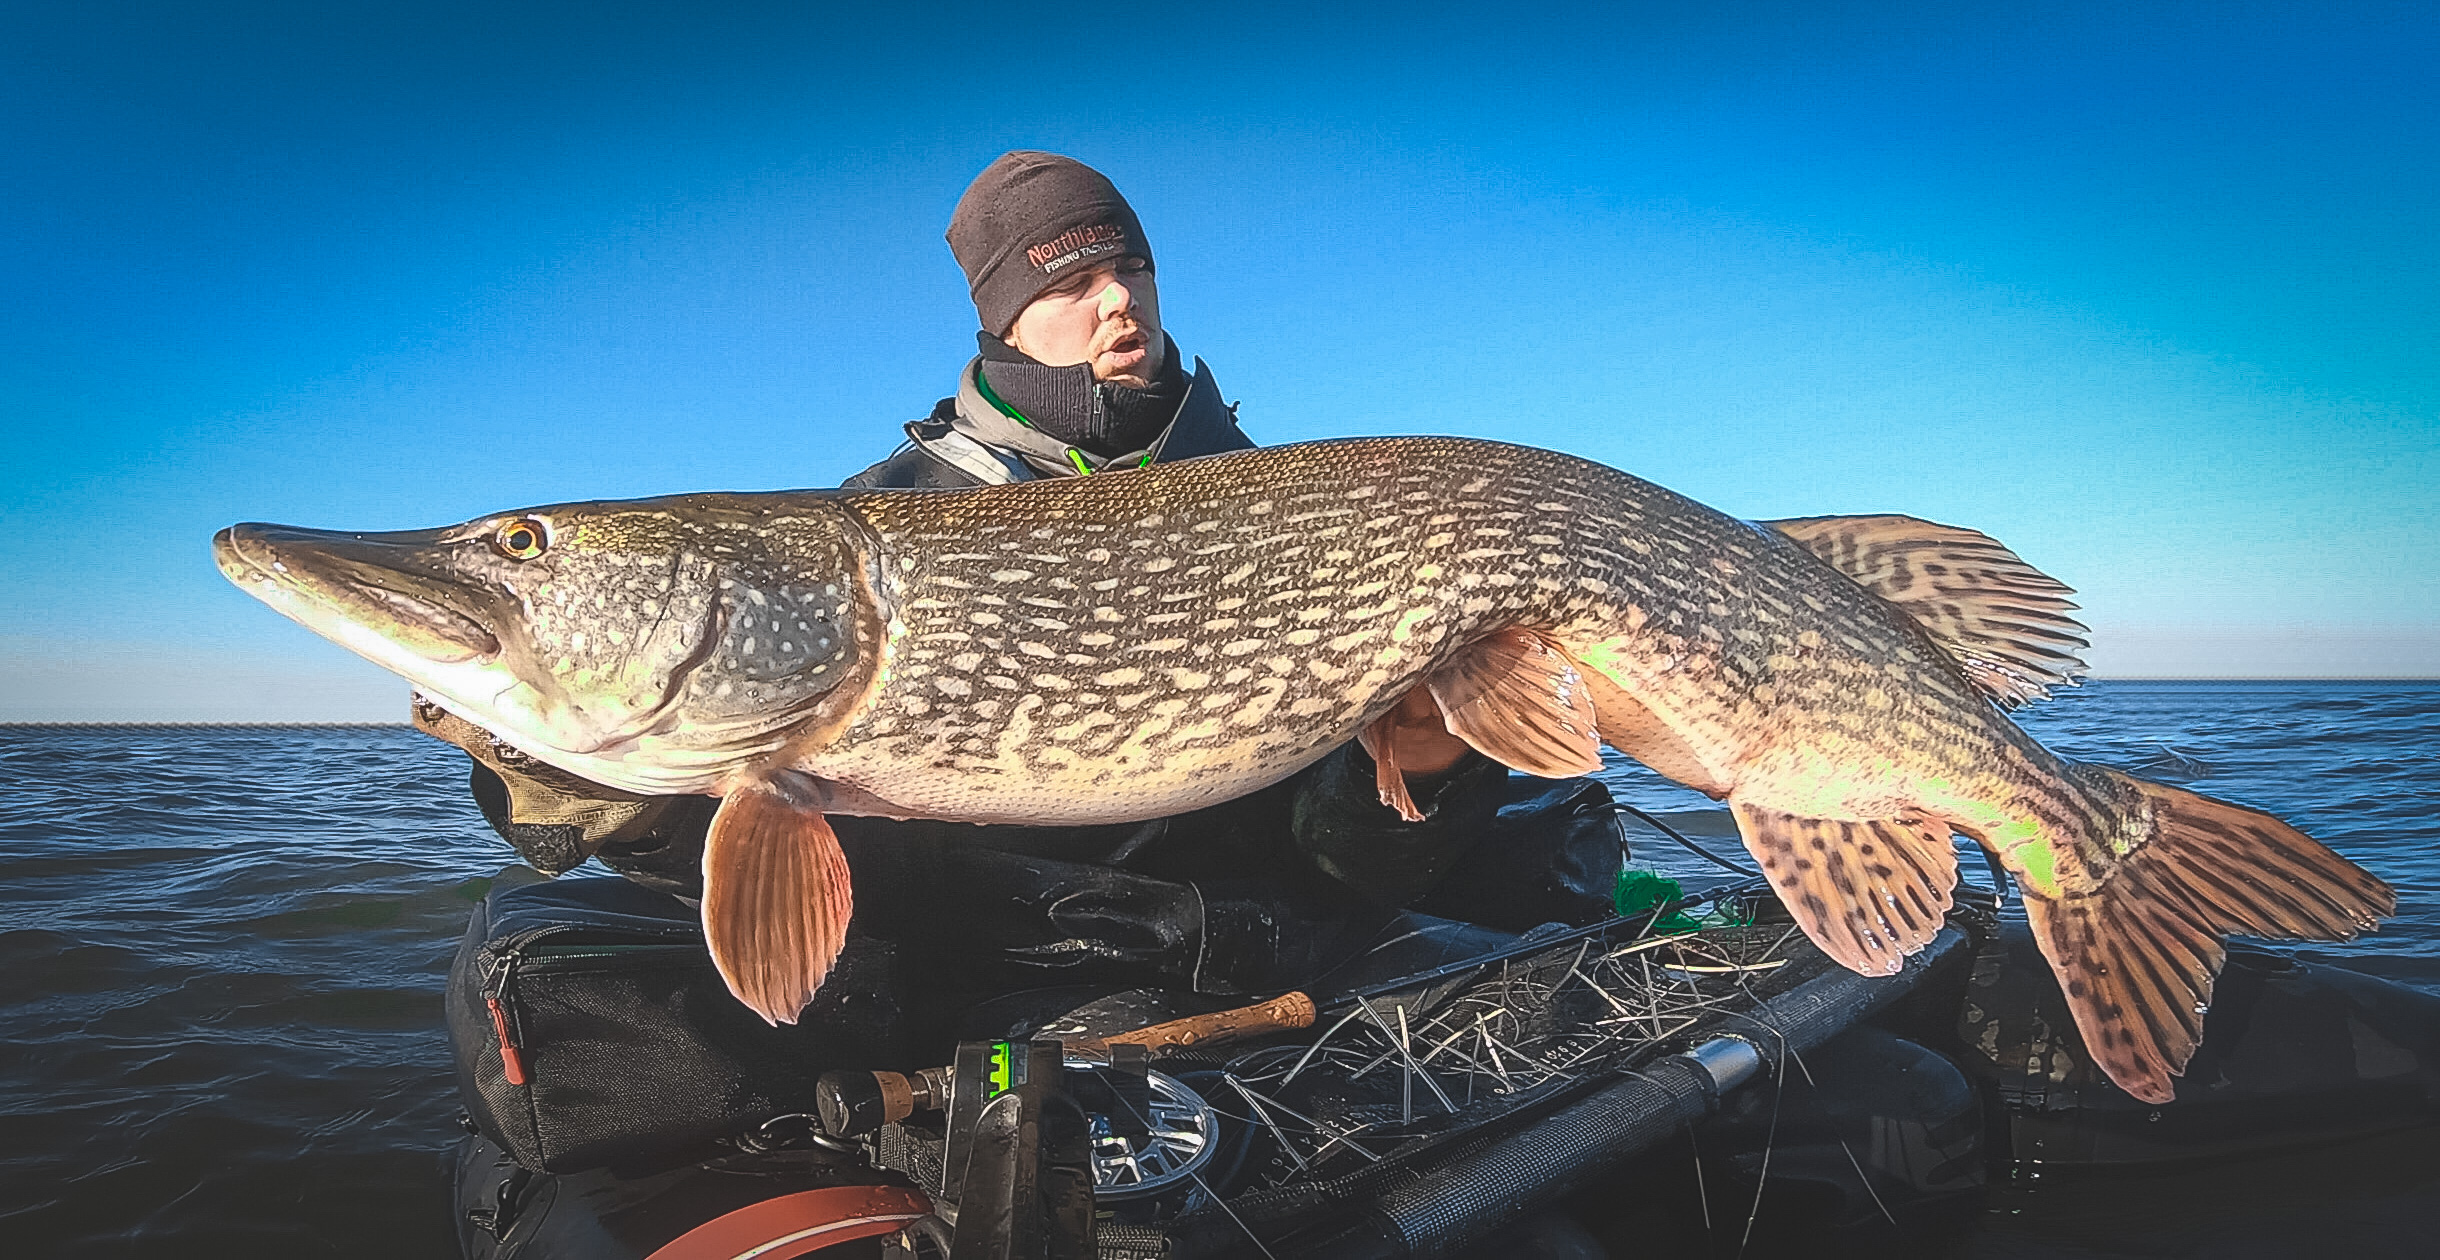 giant pike on the fly with the abu garcia beast bellyboat and navionics relief shading